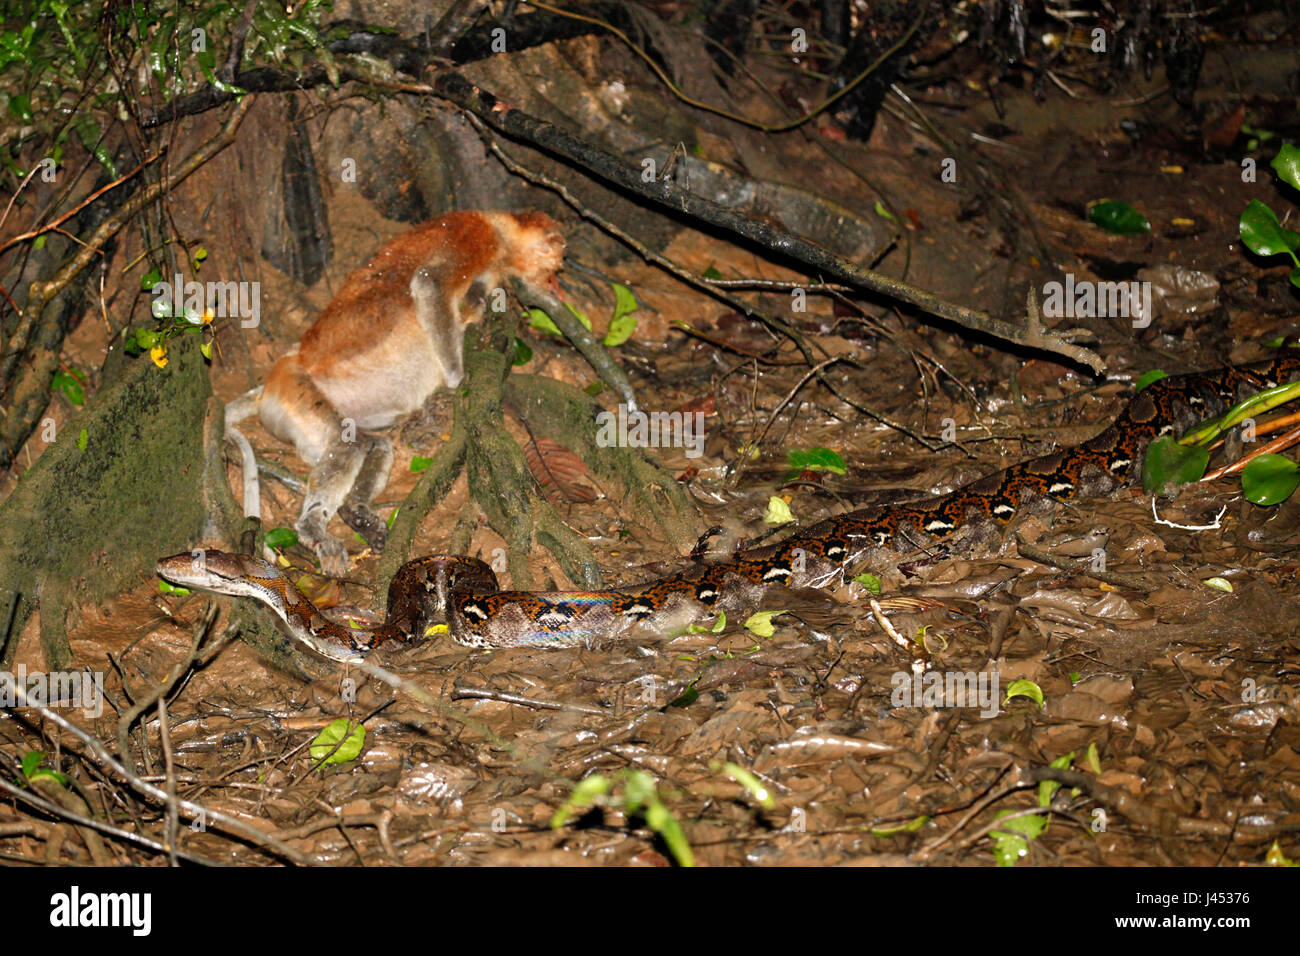 Photo of a enormous Reticulated python with a proboscis monkey as its prey - Stock Image